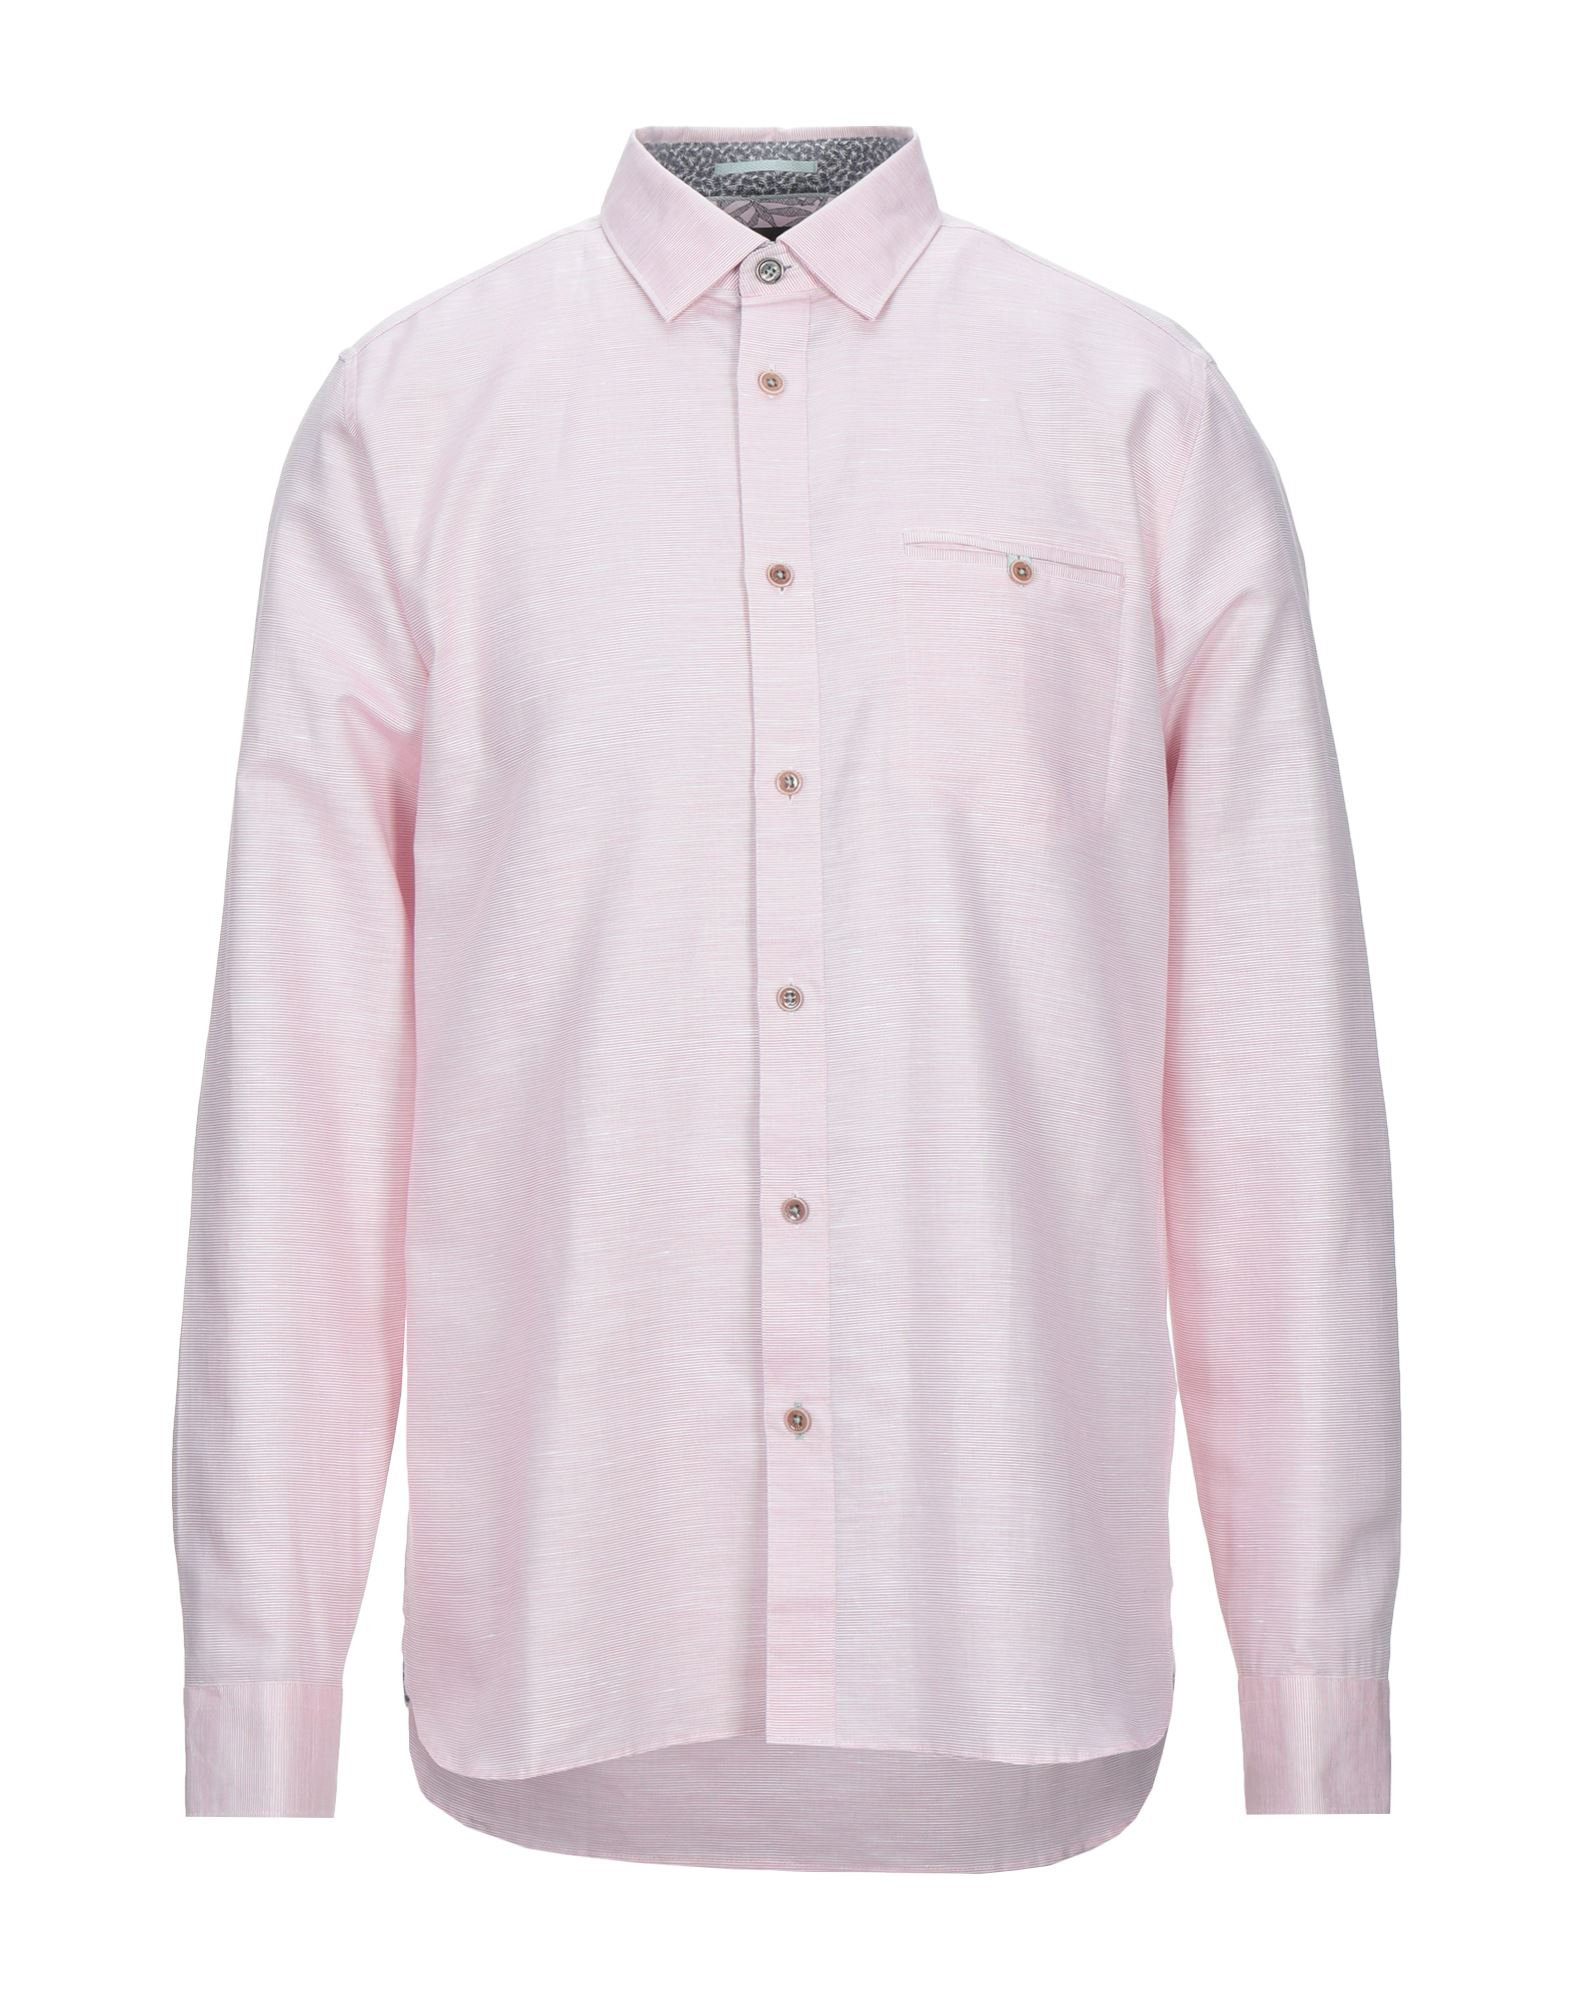 TED BAKER Shirts - Item 38958943